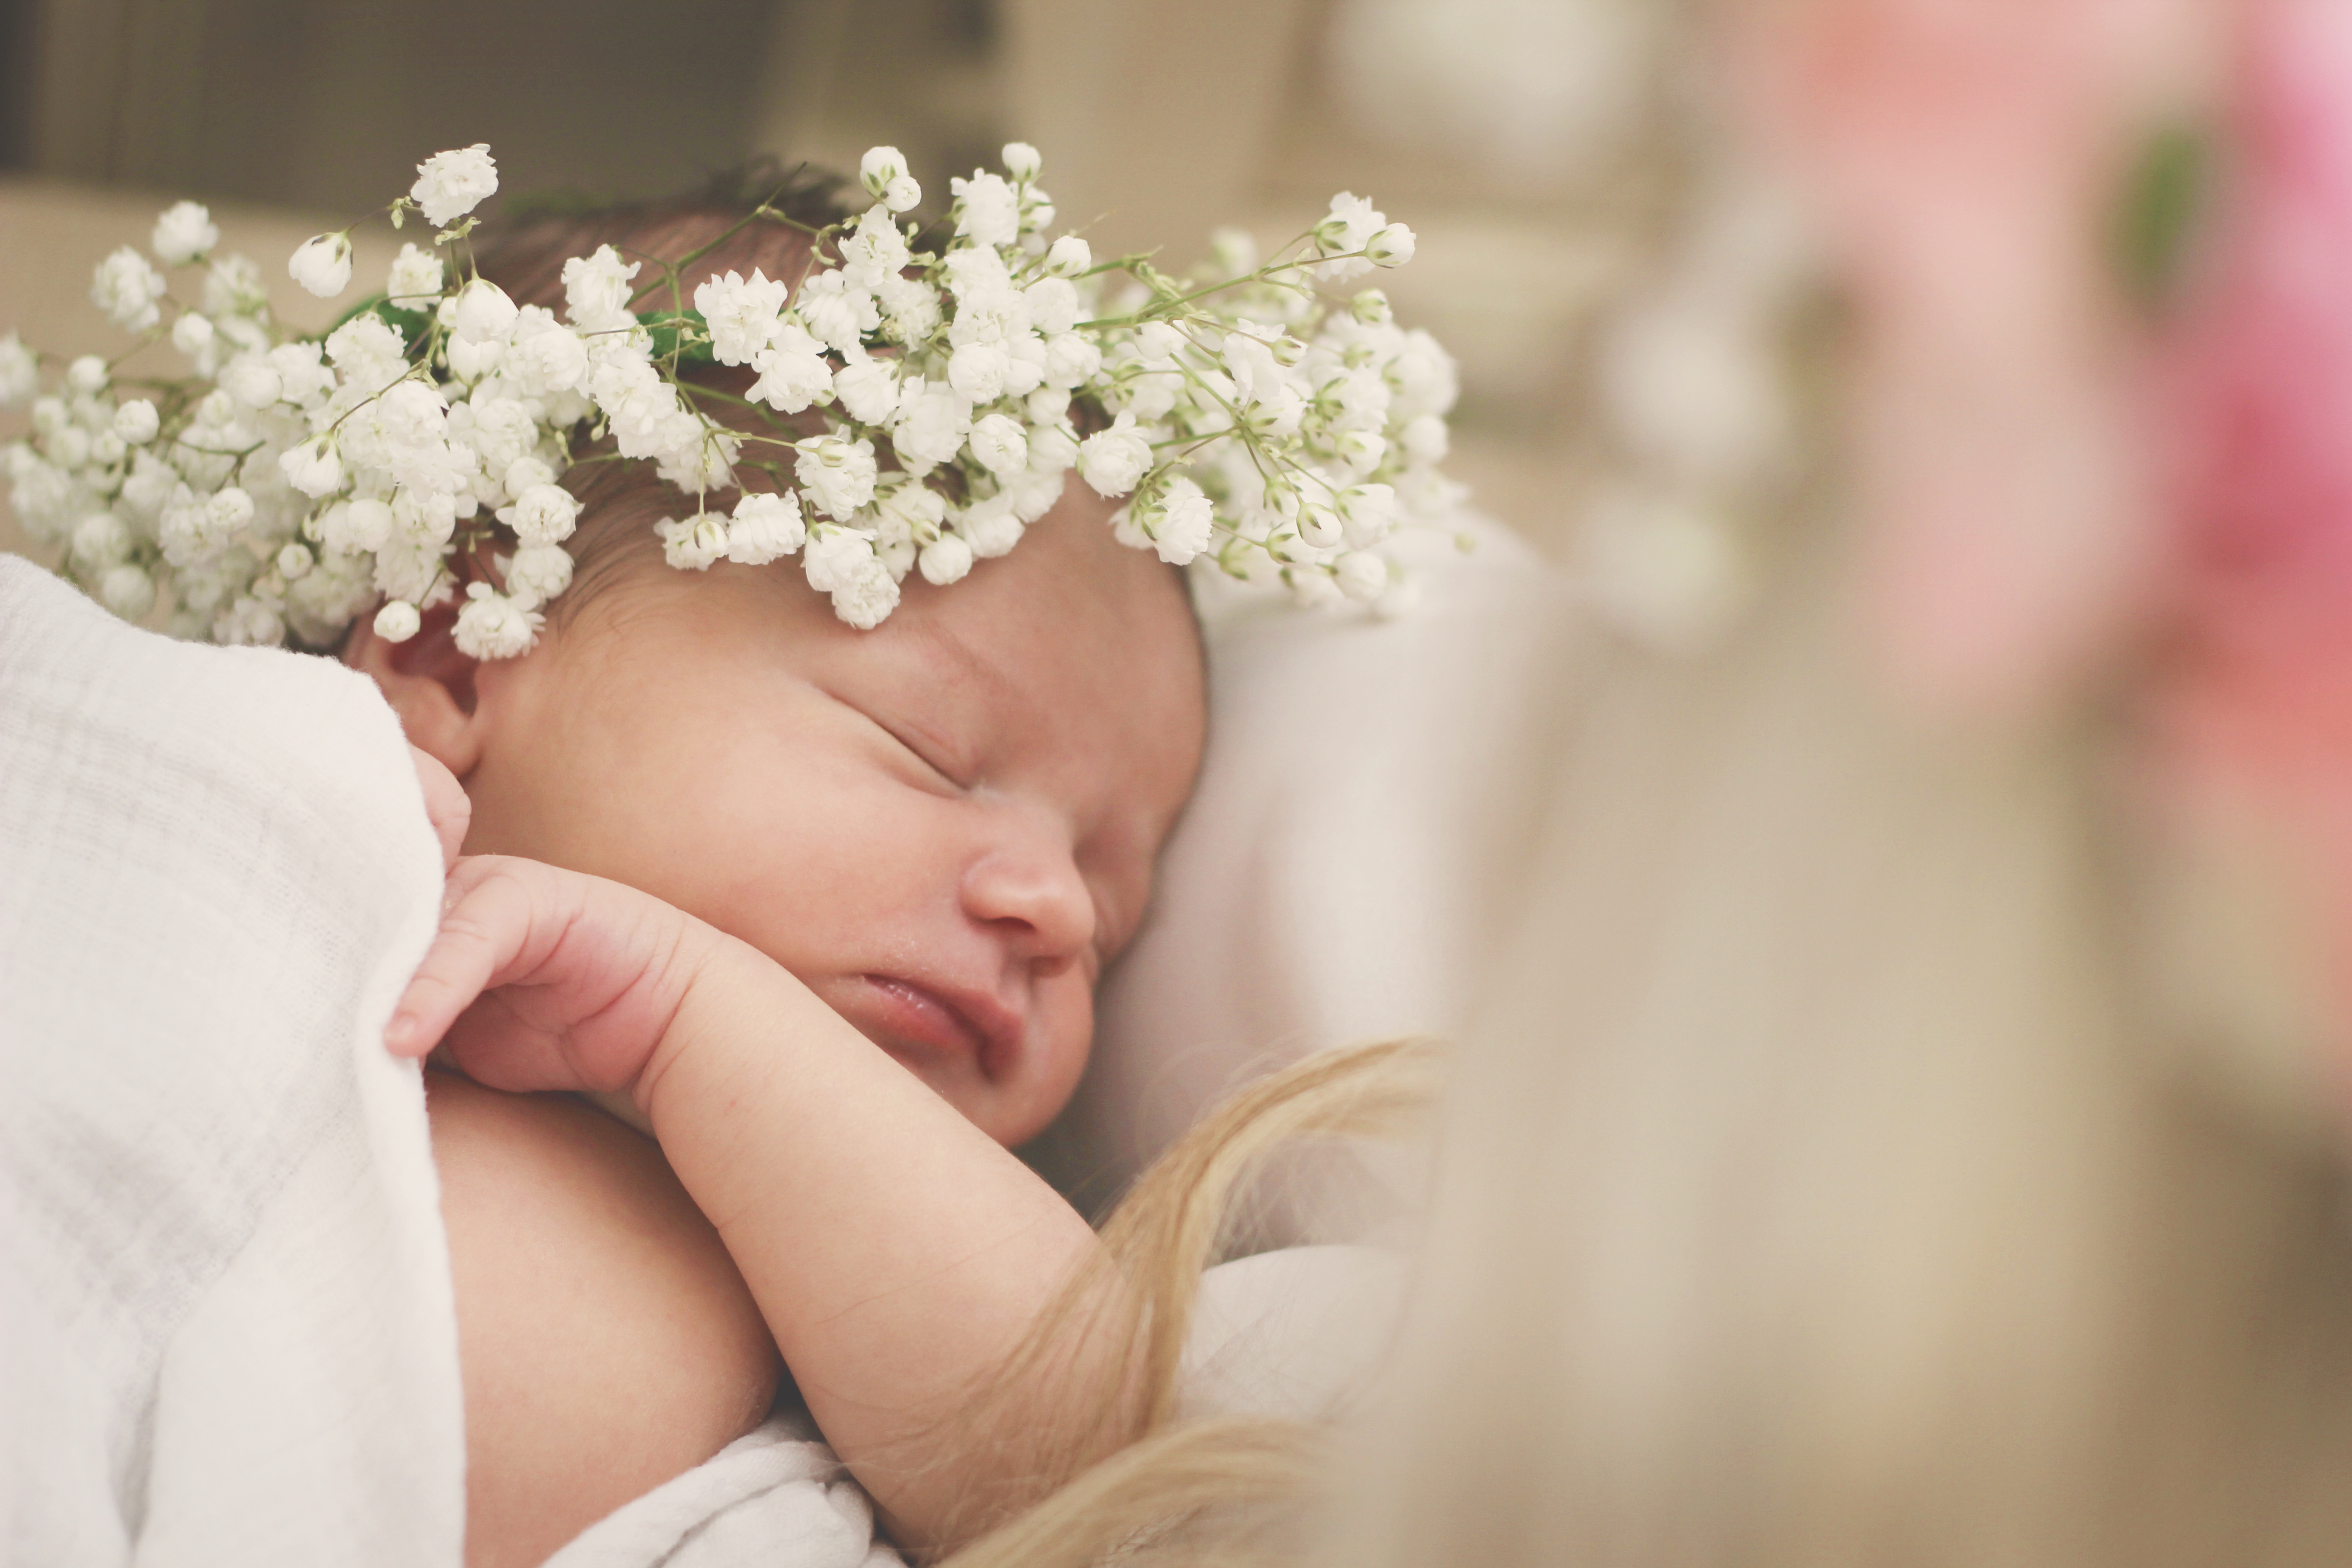 Newborn floral crown session